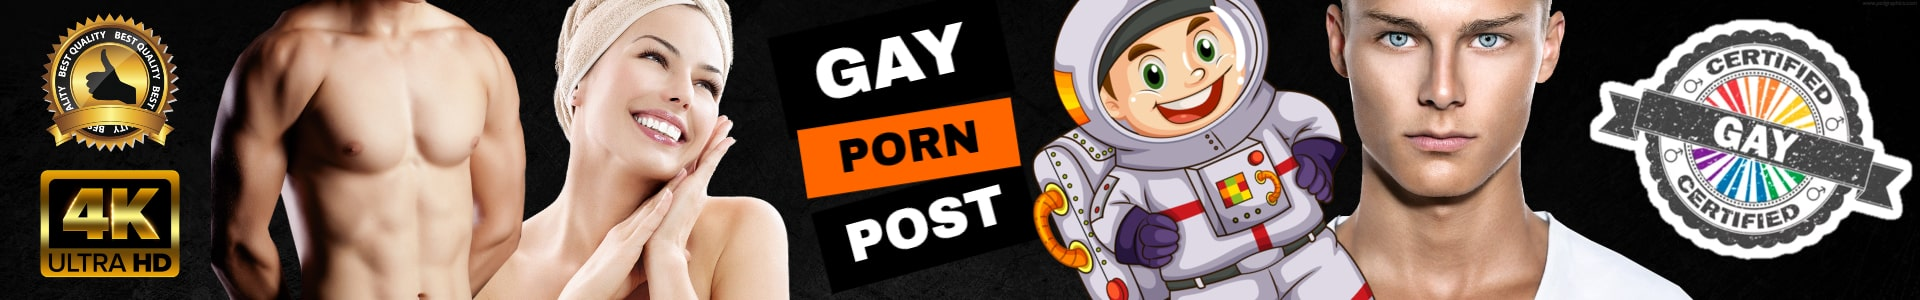 Gay porn pictures